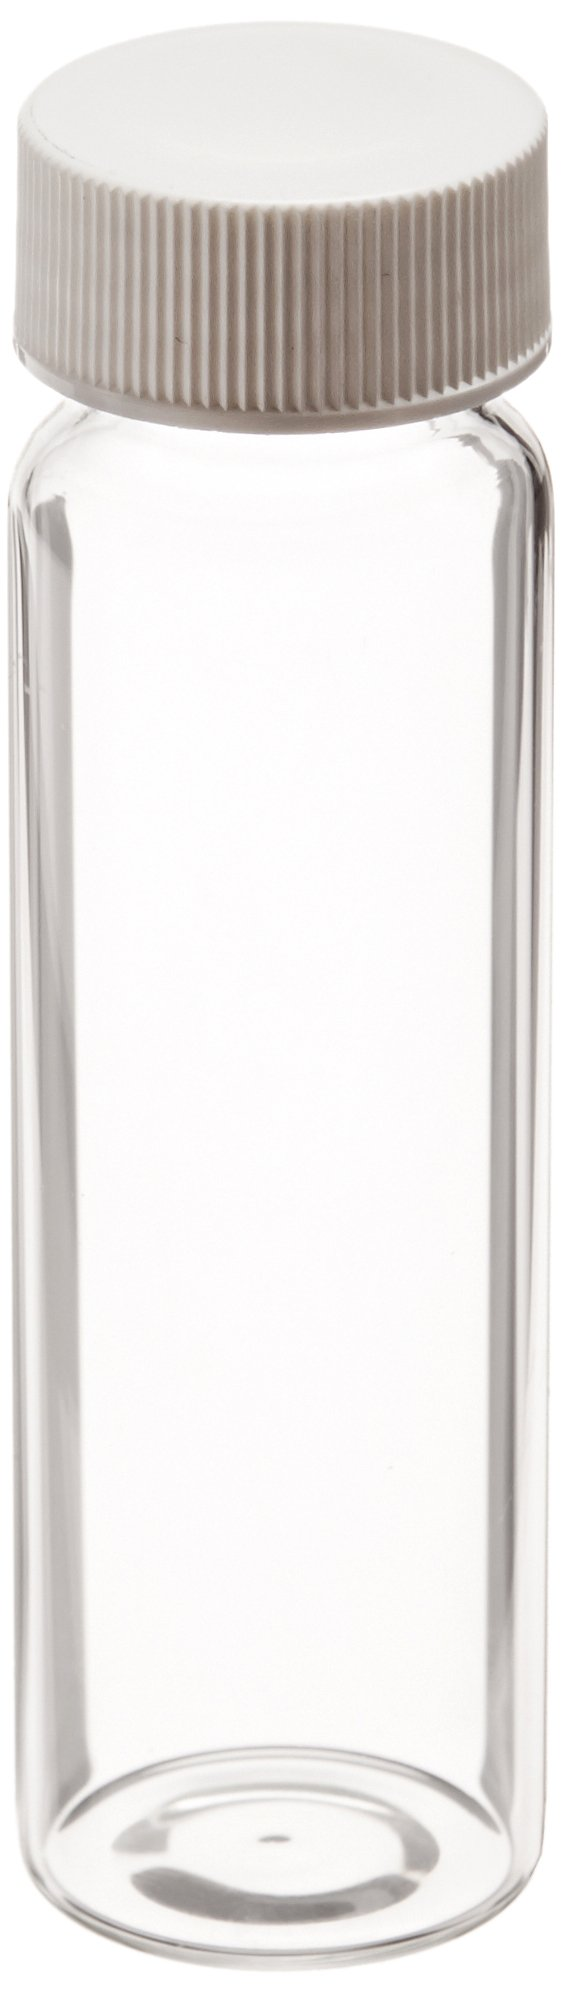 Thomas Scientific 9-120 Clear Borosilicate Glass Standard VOA Vial with White Polypropylene Solid Top Closure and PTFE Lined, 24-400mm Cap Size, 40mL Capacity (Pack of 72) by Thomas Scientific